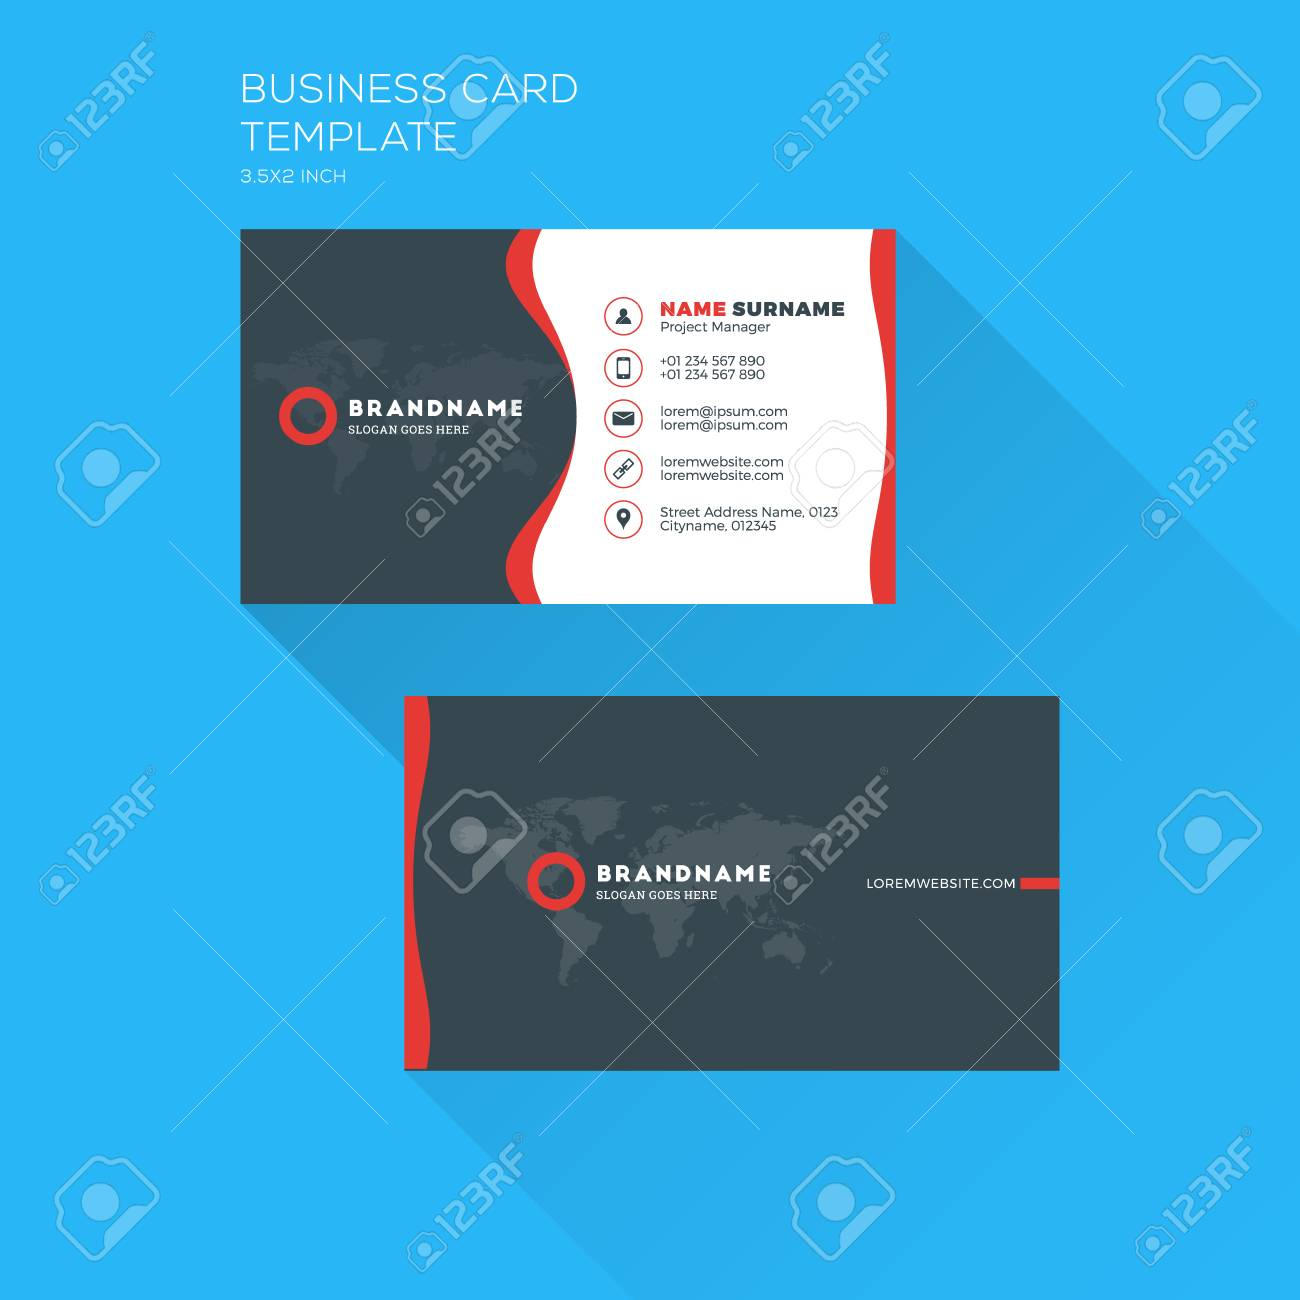 Corporate business card print template personal visiting card corporate business card print template personal visiting card with company clean flat design cheaphphosting